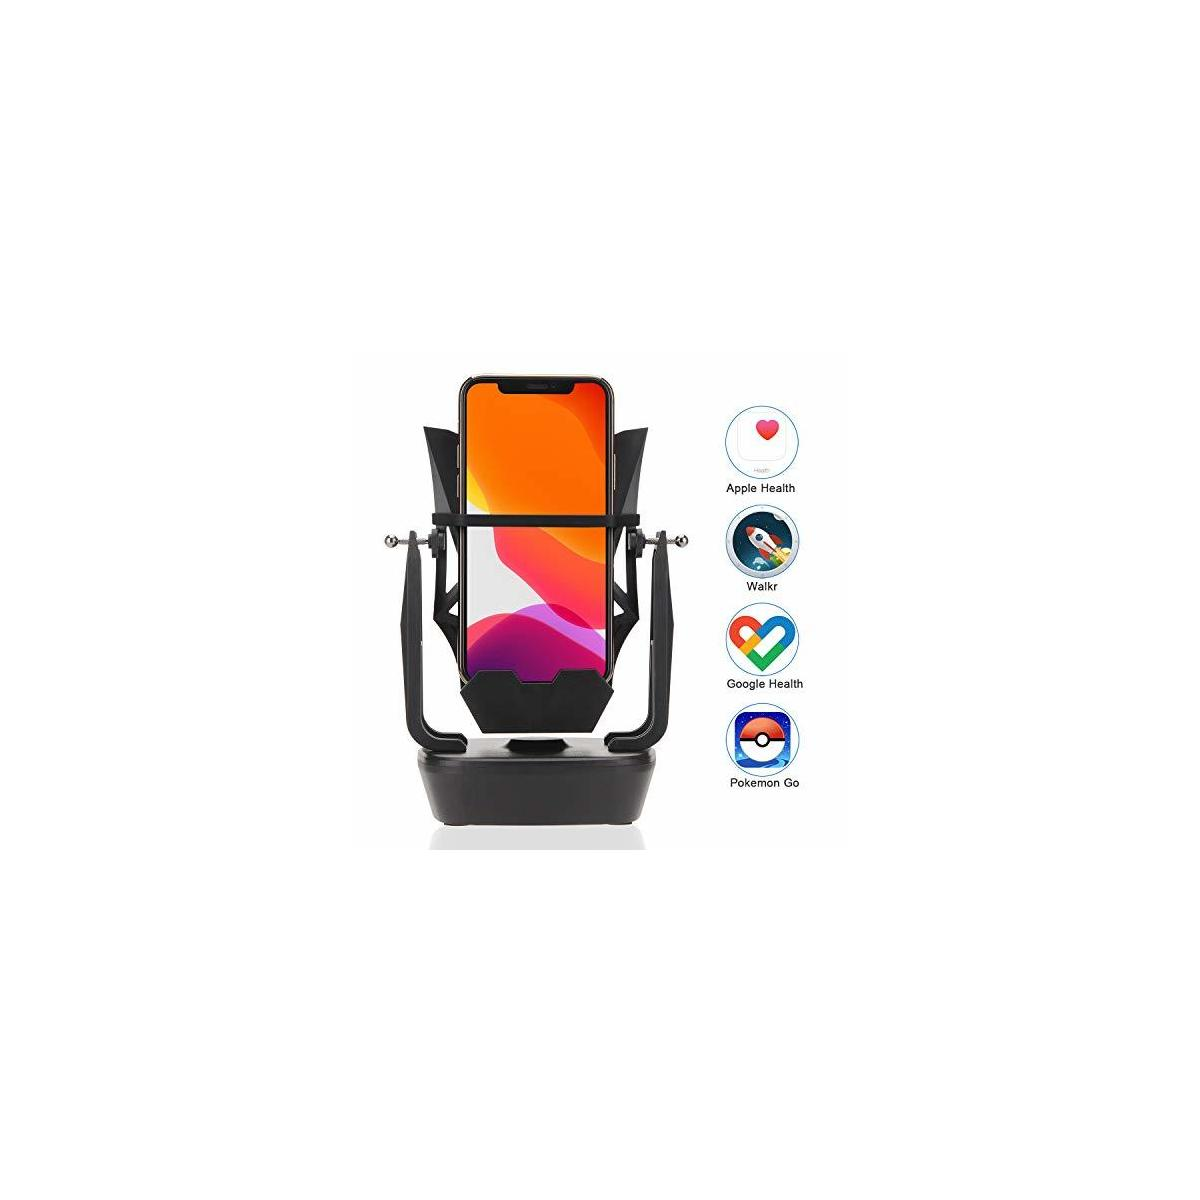 JESHA Cell Phone Holder and Stand for Desk - Earn Steps with The Cellphone Cradle Automatic Shaker for Mobile Smartphones, Poke Ball Plus, Pokemon Go